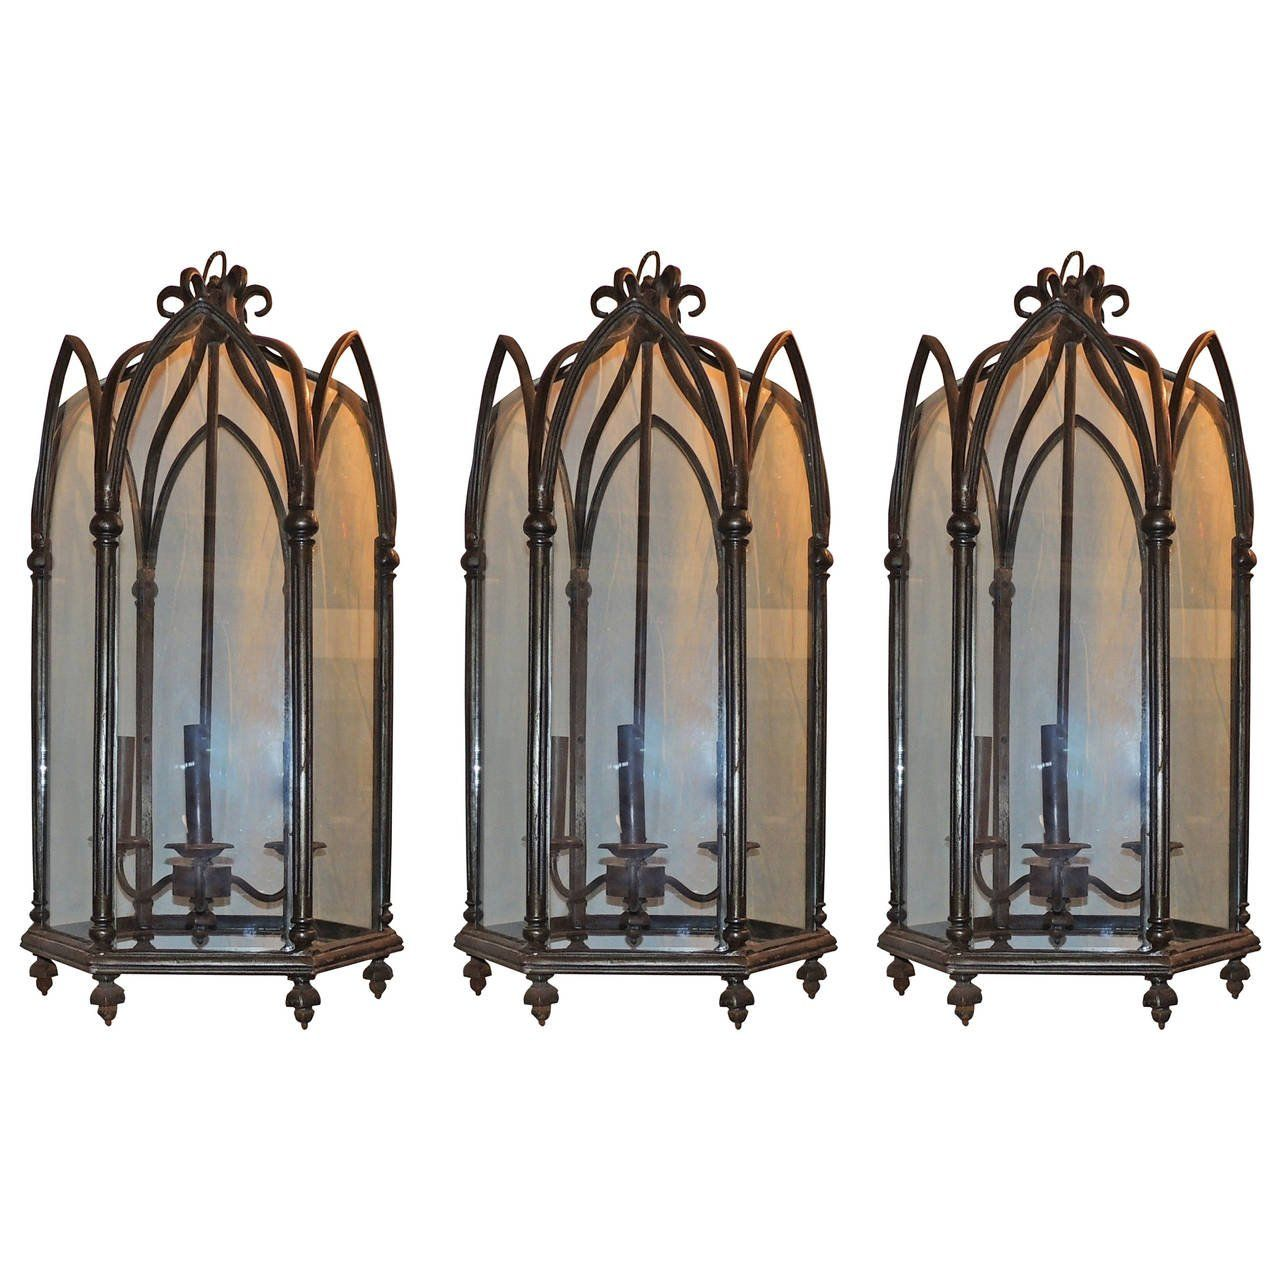 Loggia amazing set of three victorian gothic tudor silvered loggia amazing set of three victorian gothic tudor silvered lantern chandelier fixtures 1 arubaitofo Gallery